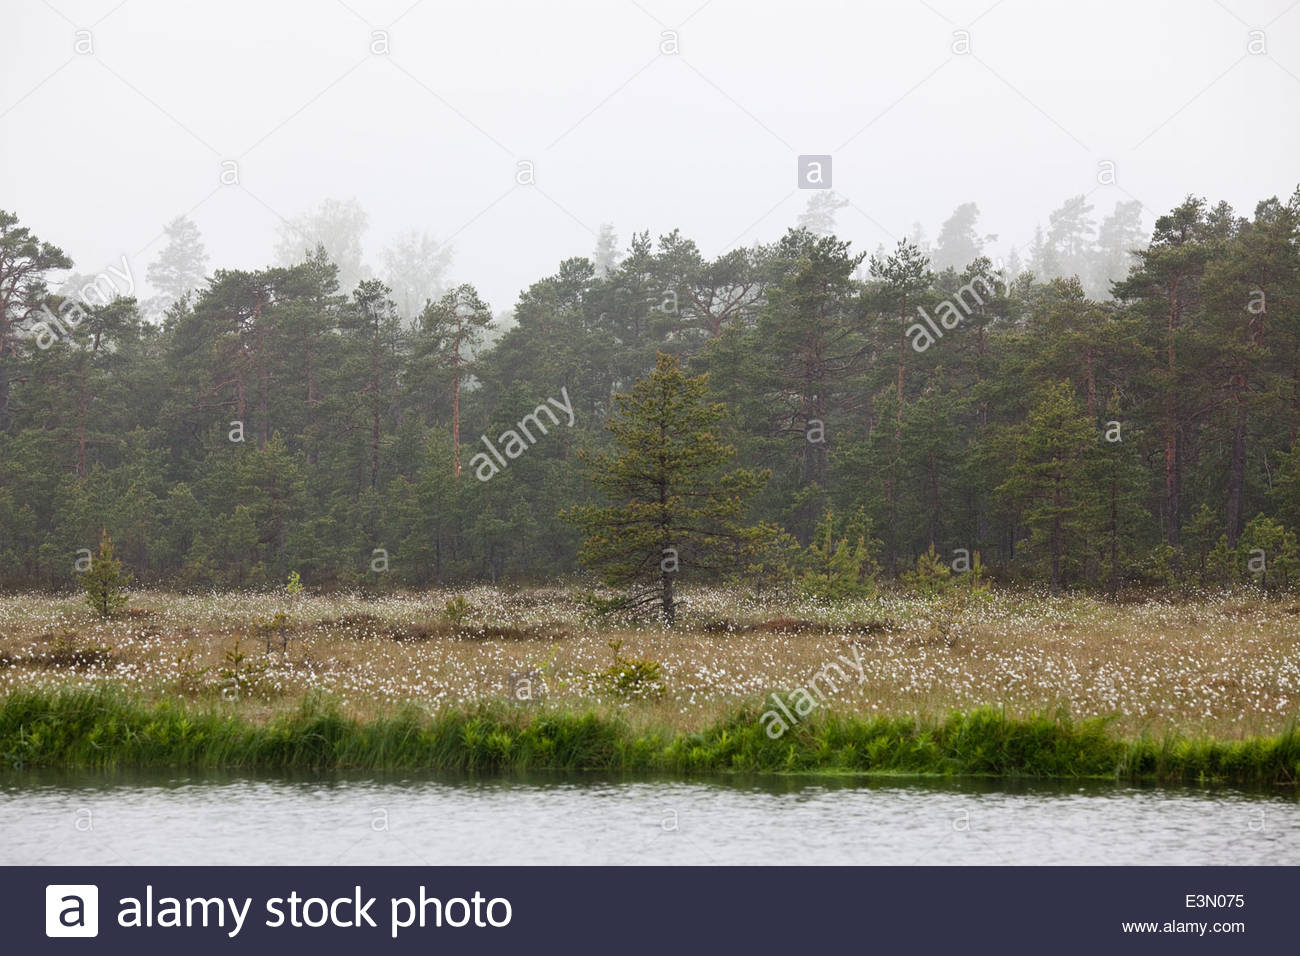 Hazy morning in recreational area - Stock Image